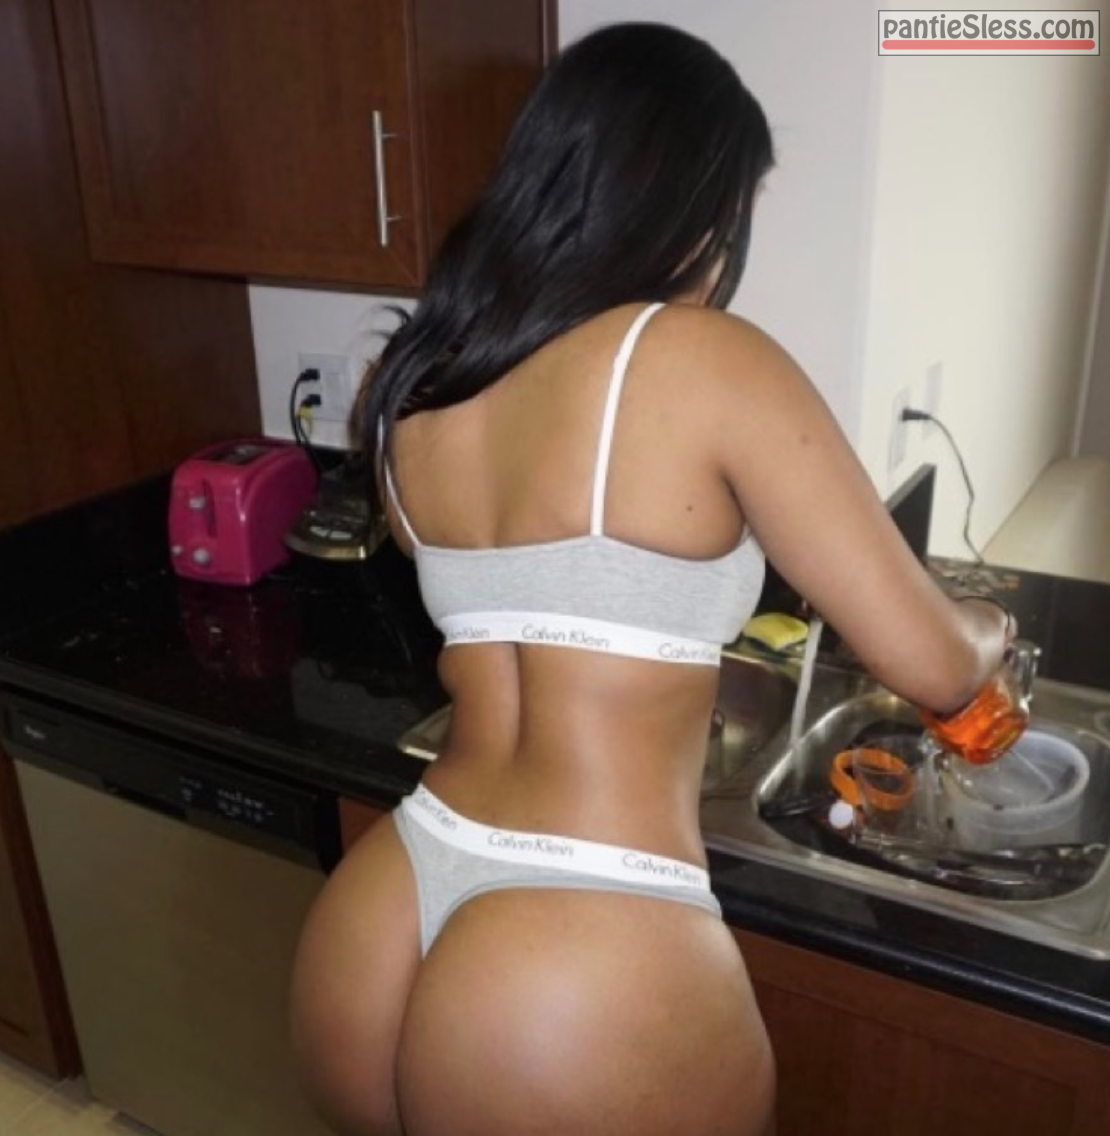 panties ebony ass flash  Shelley Golden almost nude in the kitchen showing round booty